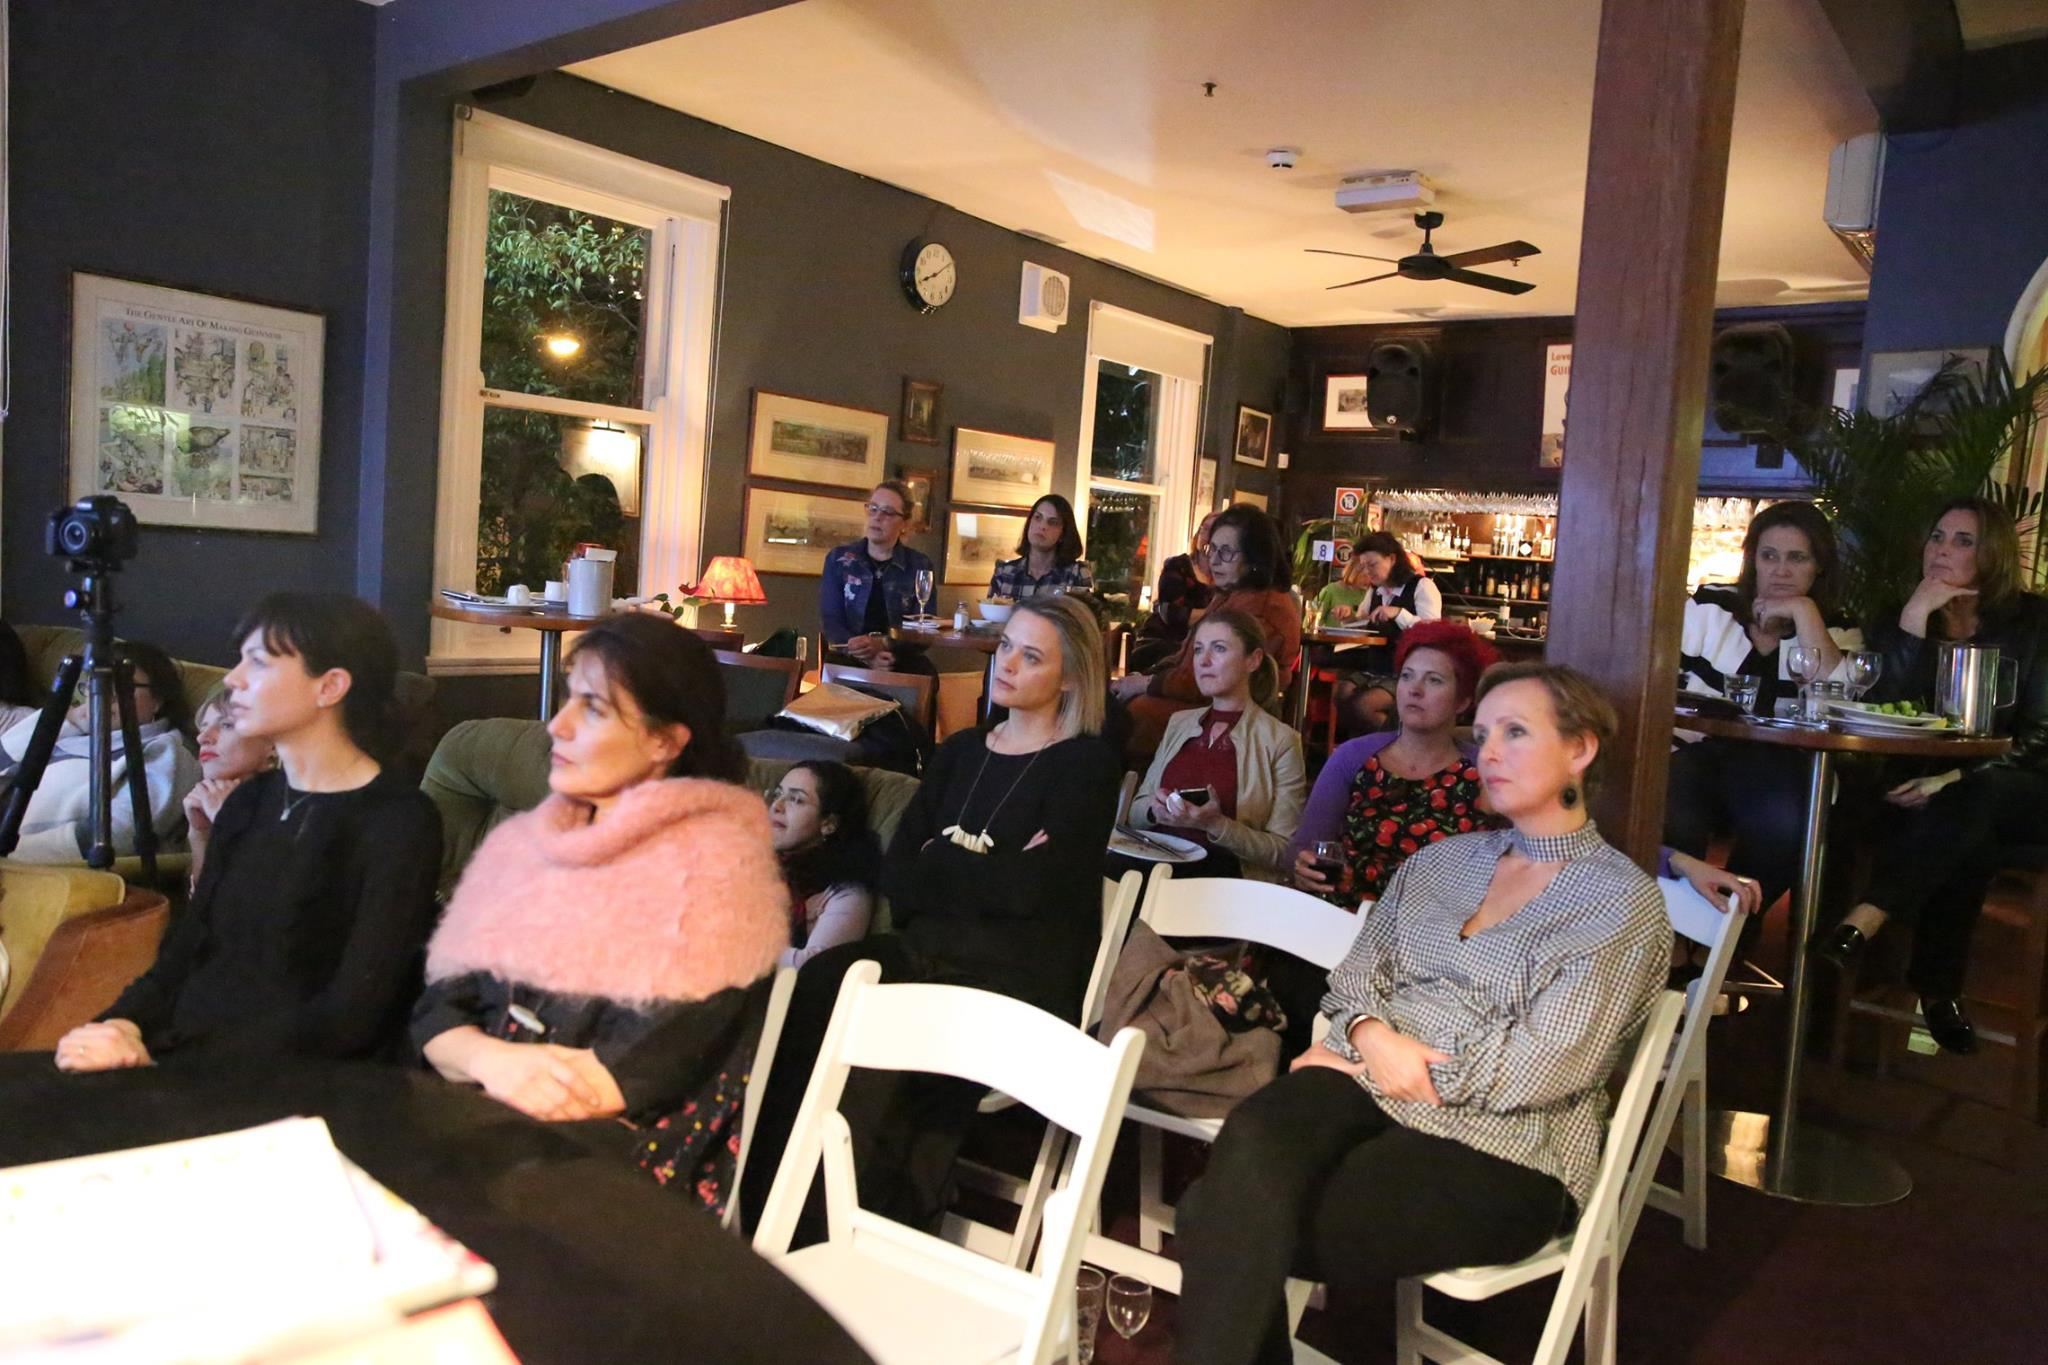 A roomful of creative mamas entralled by the story of our fabulous featured evening presenter, Emma Veiga-Malta.